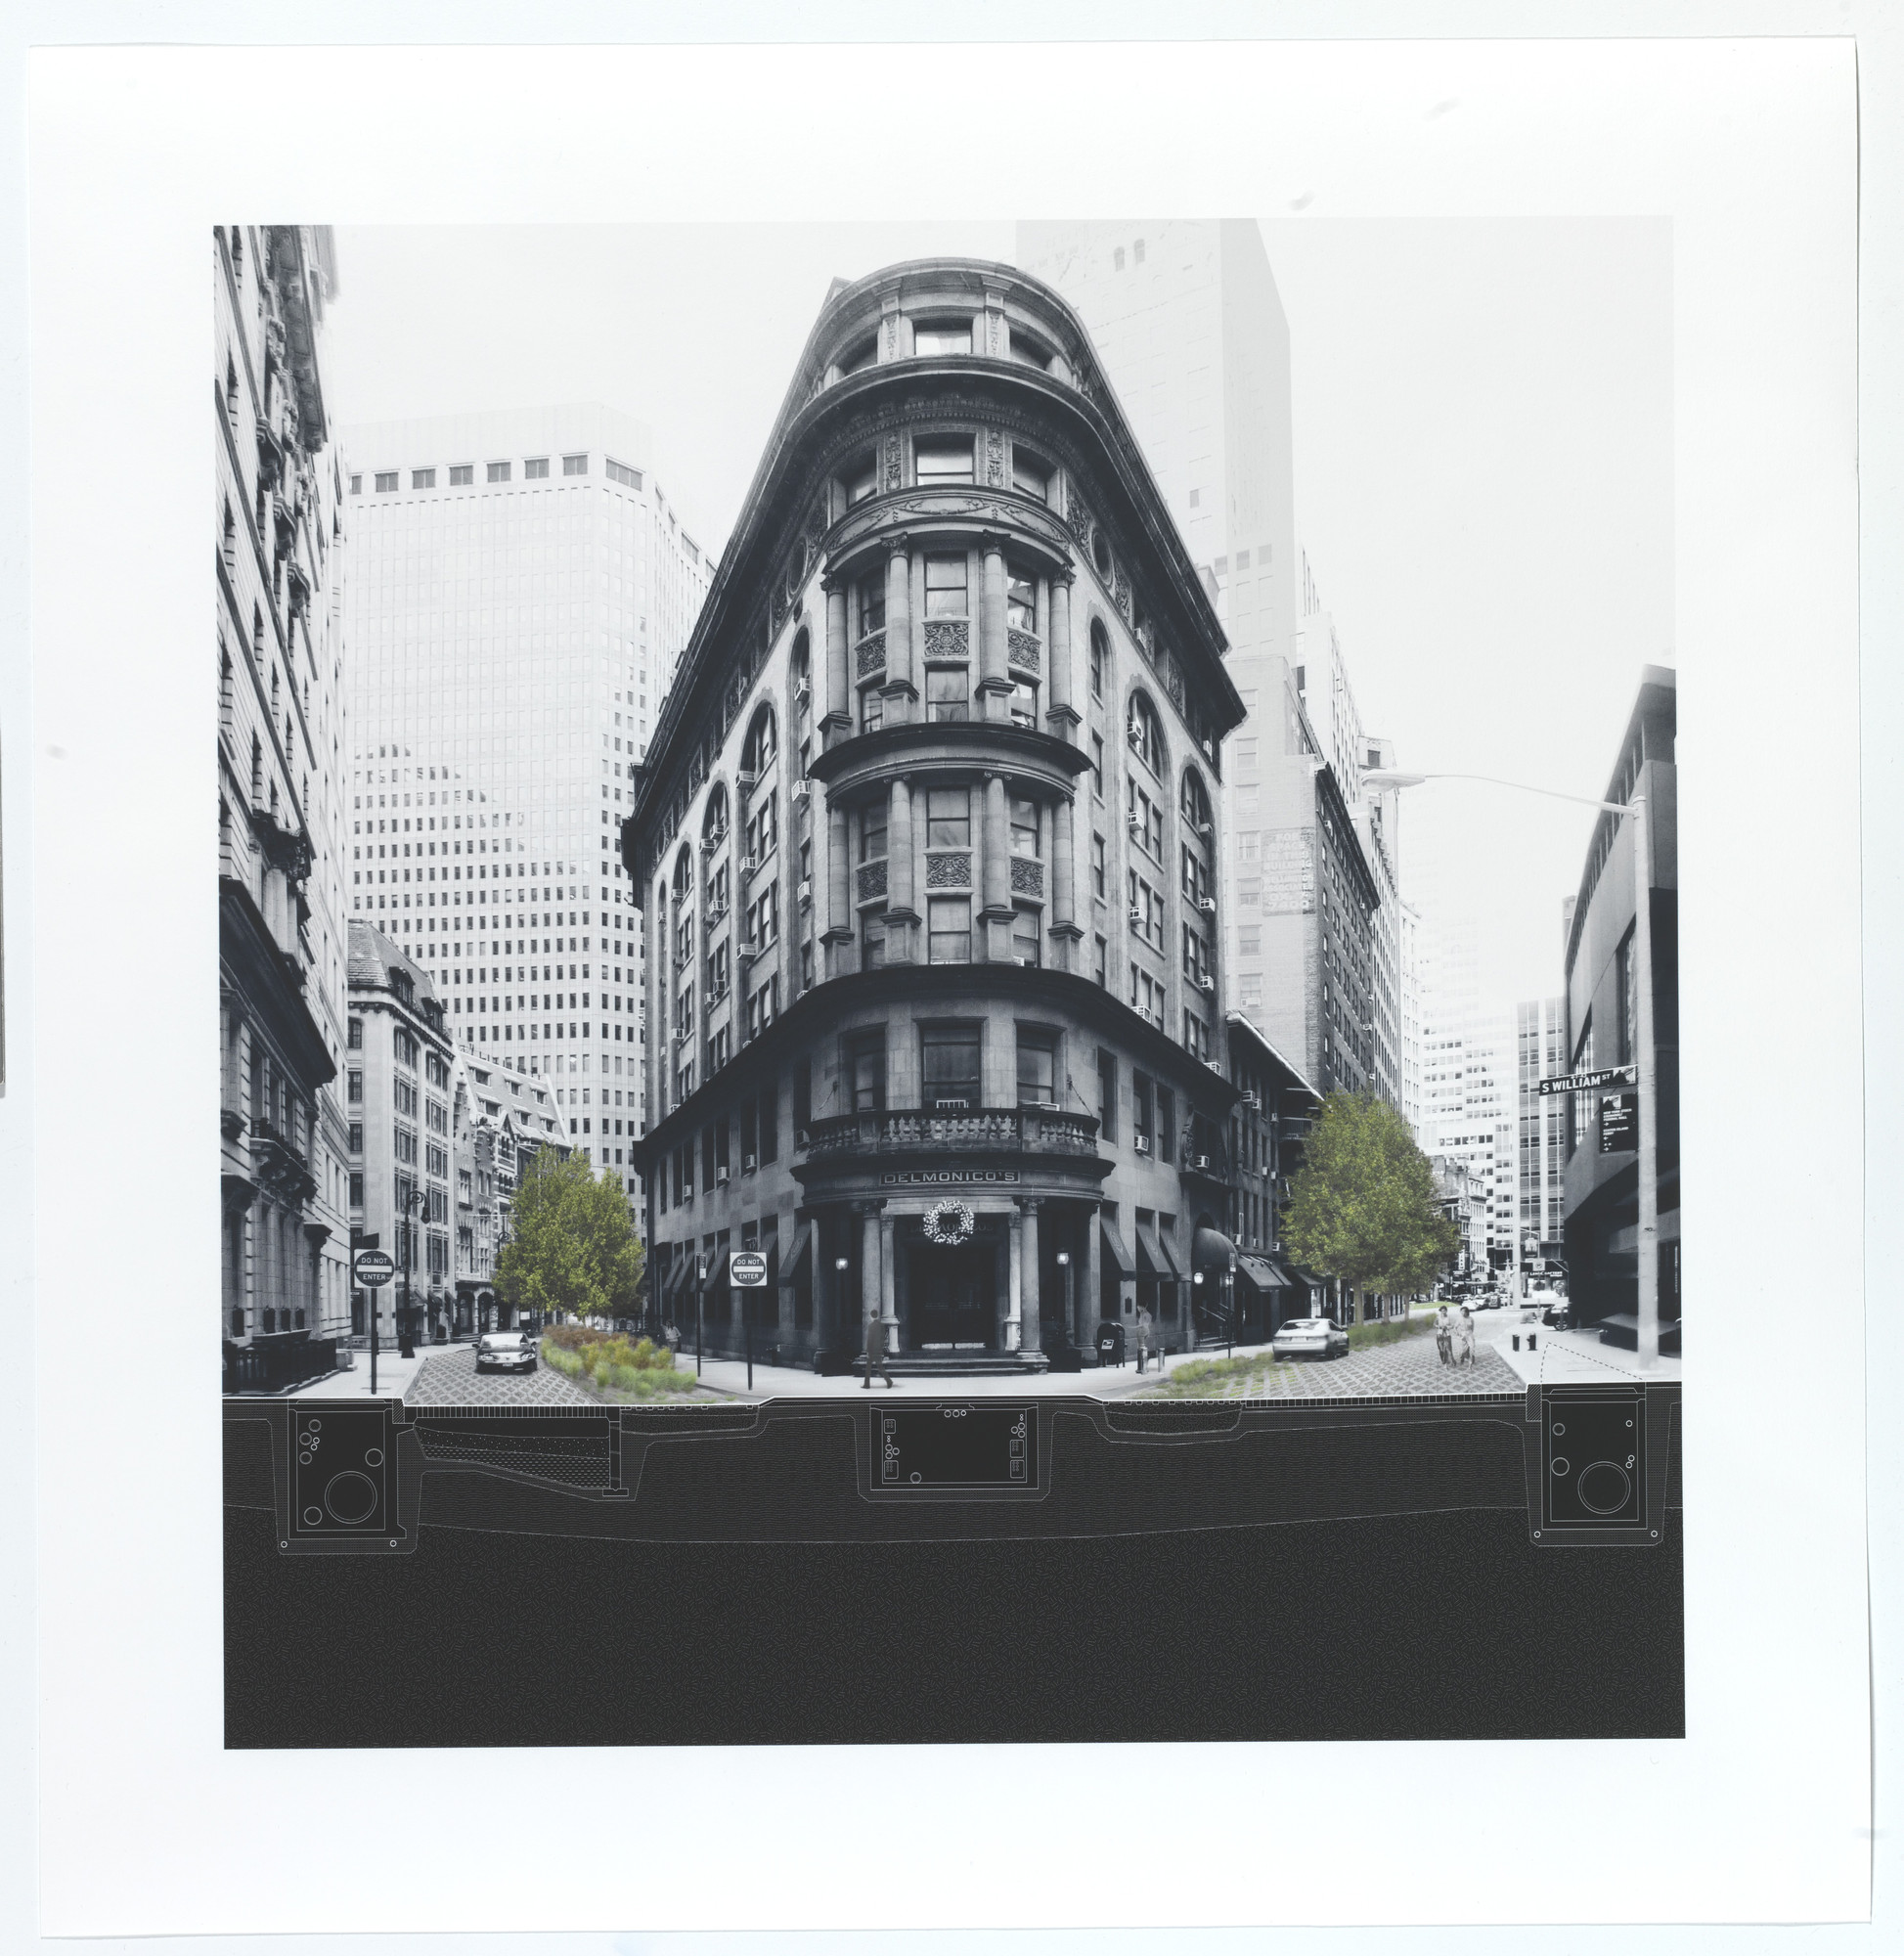 Stephen Cassell, Adam Yarinsky, Kim Yao, Susannah C. Drake. A New Urban Ground, project (Cross-section of Hanover Square). 2010